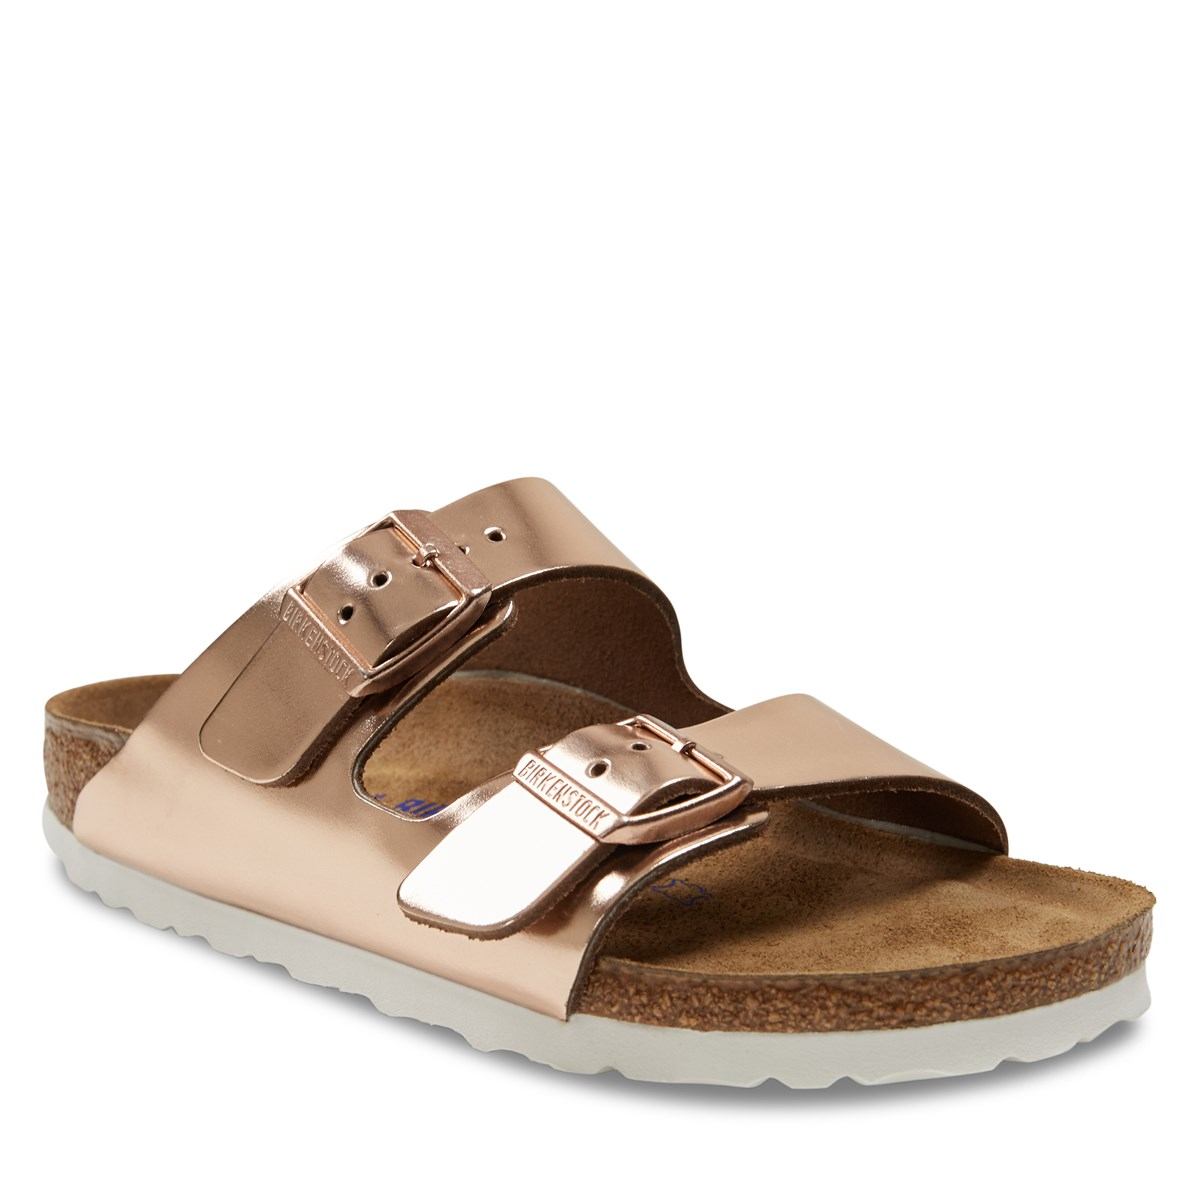 22c8ef993fe5 Women s Arizona Soft Sandals in Metallic Copper. Previous. default view   ALT1  ALT2